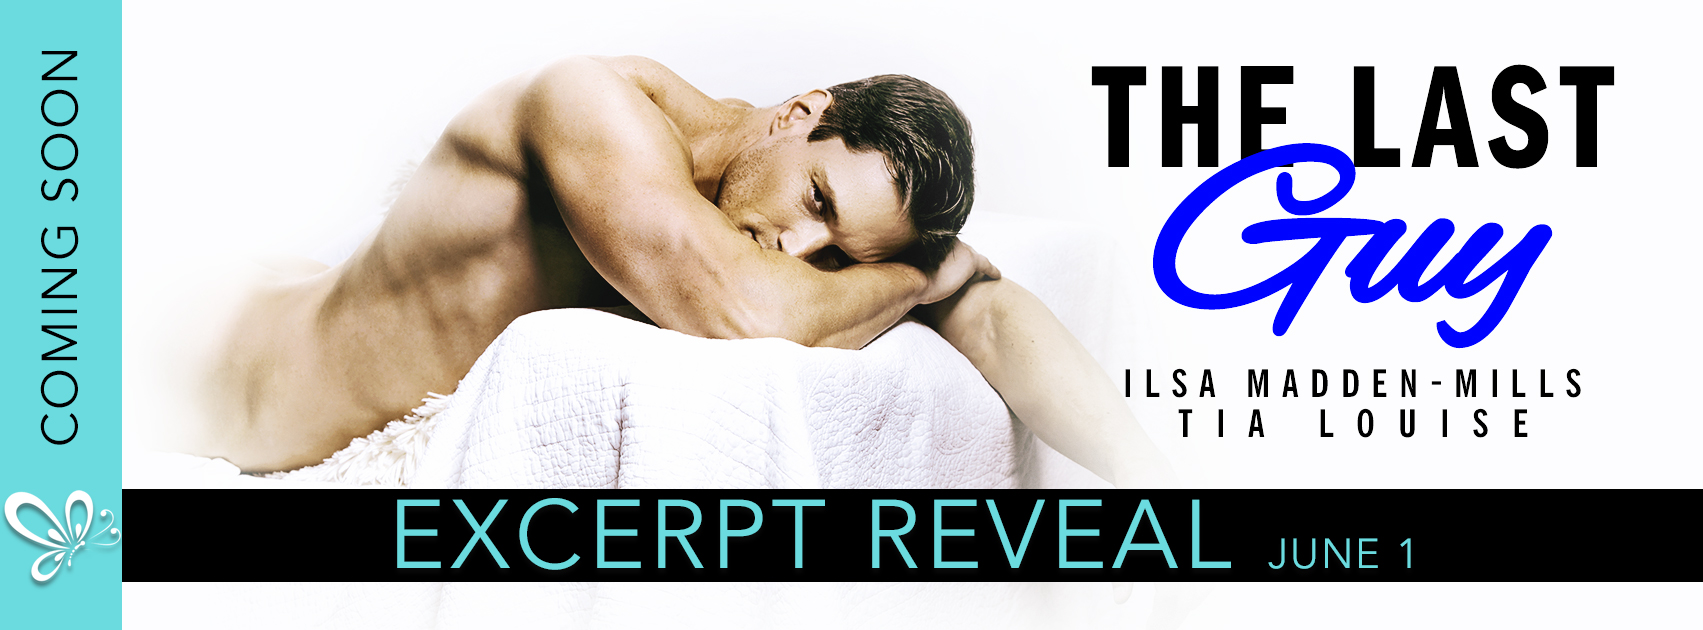 Excerpt Reveal: The Last Guy by Ilsa Madden-Millas & Tia Louise